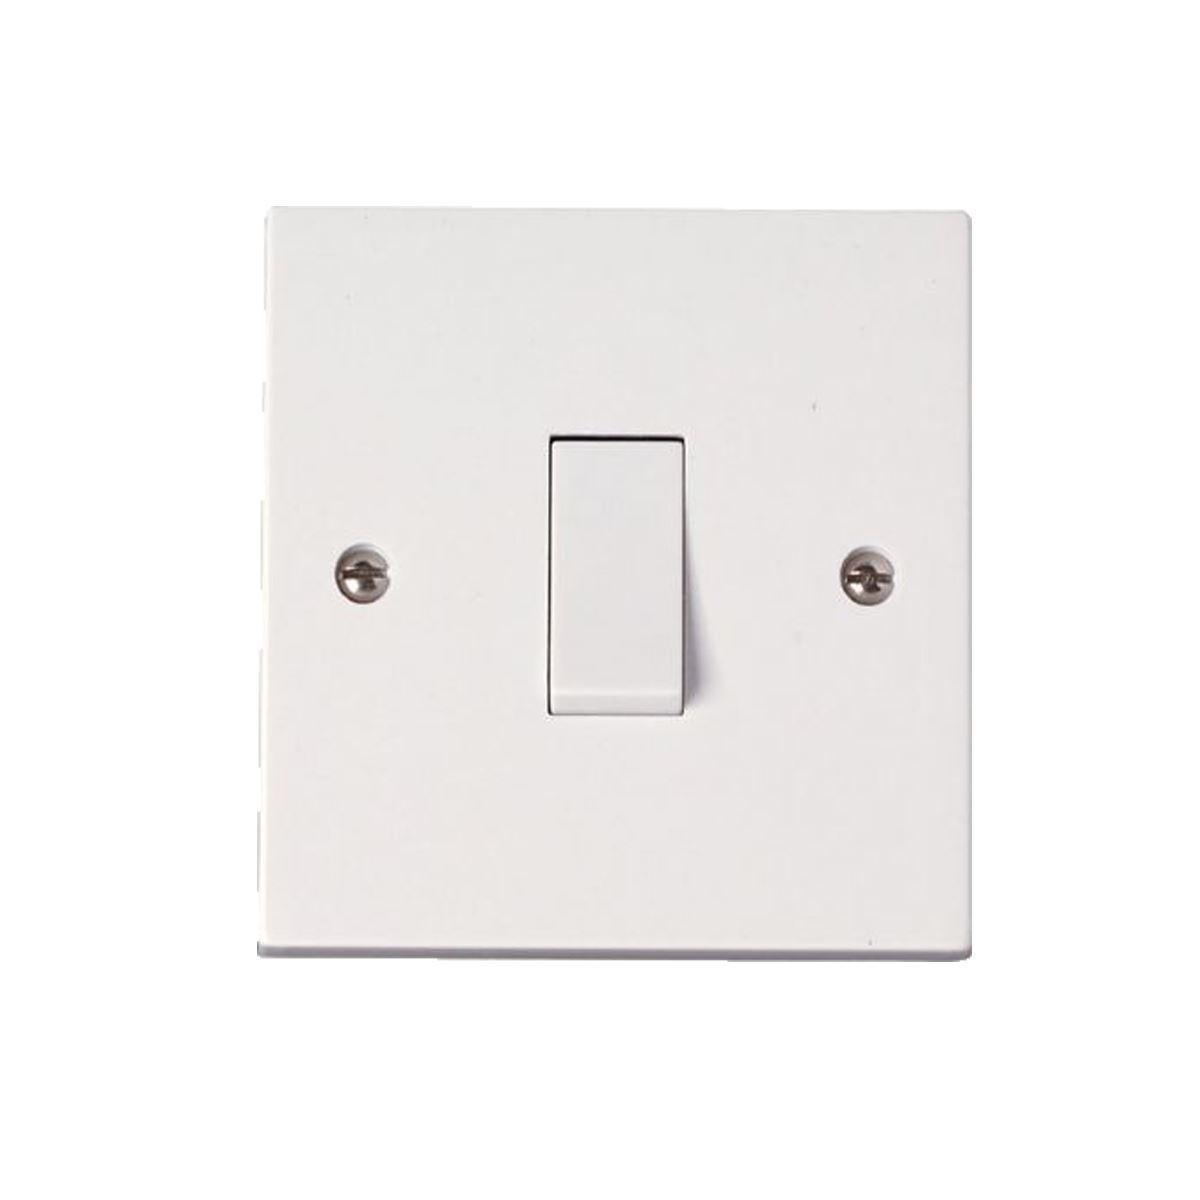 Single White Electrical Plastic Light Switch 1 Gang 1 Way